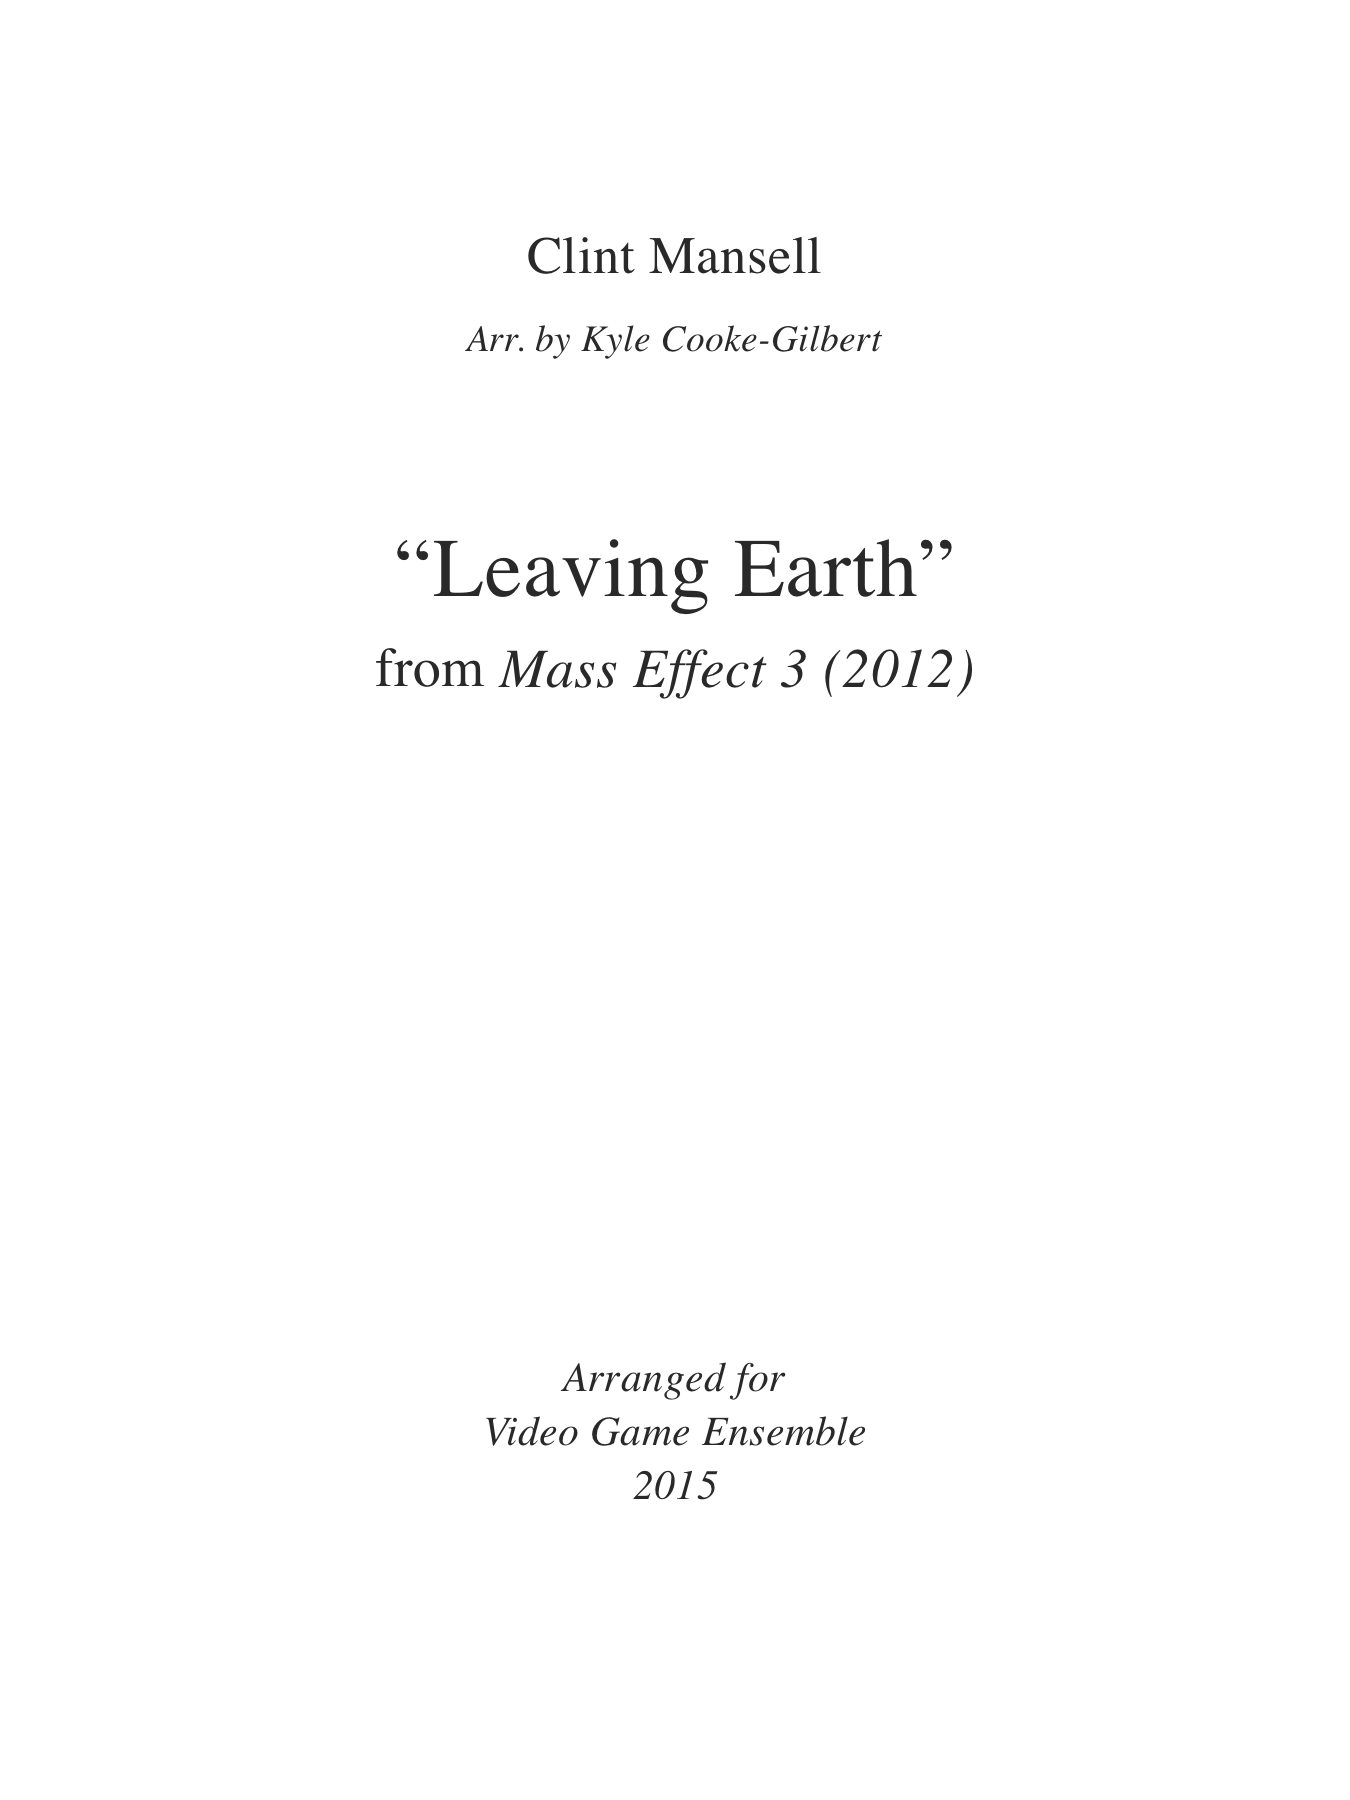 Mass Effect 3 Leaving Earth.png